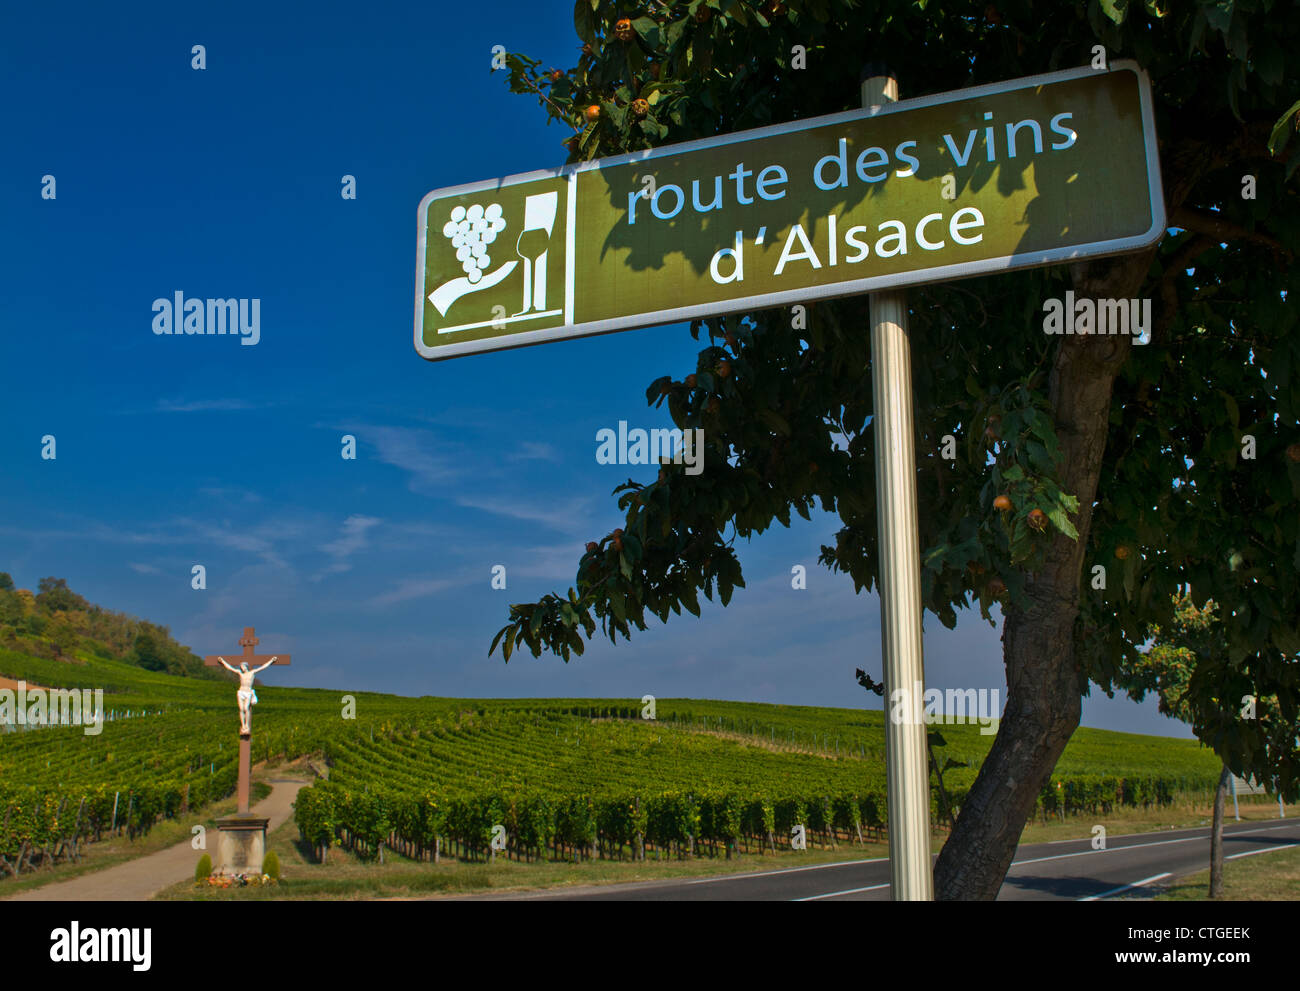 Route des Vins d' Alsace road sign in the vineyards near Riquewihr - Stock Image